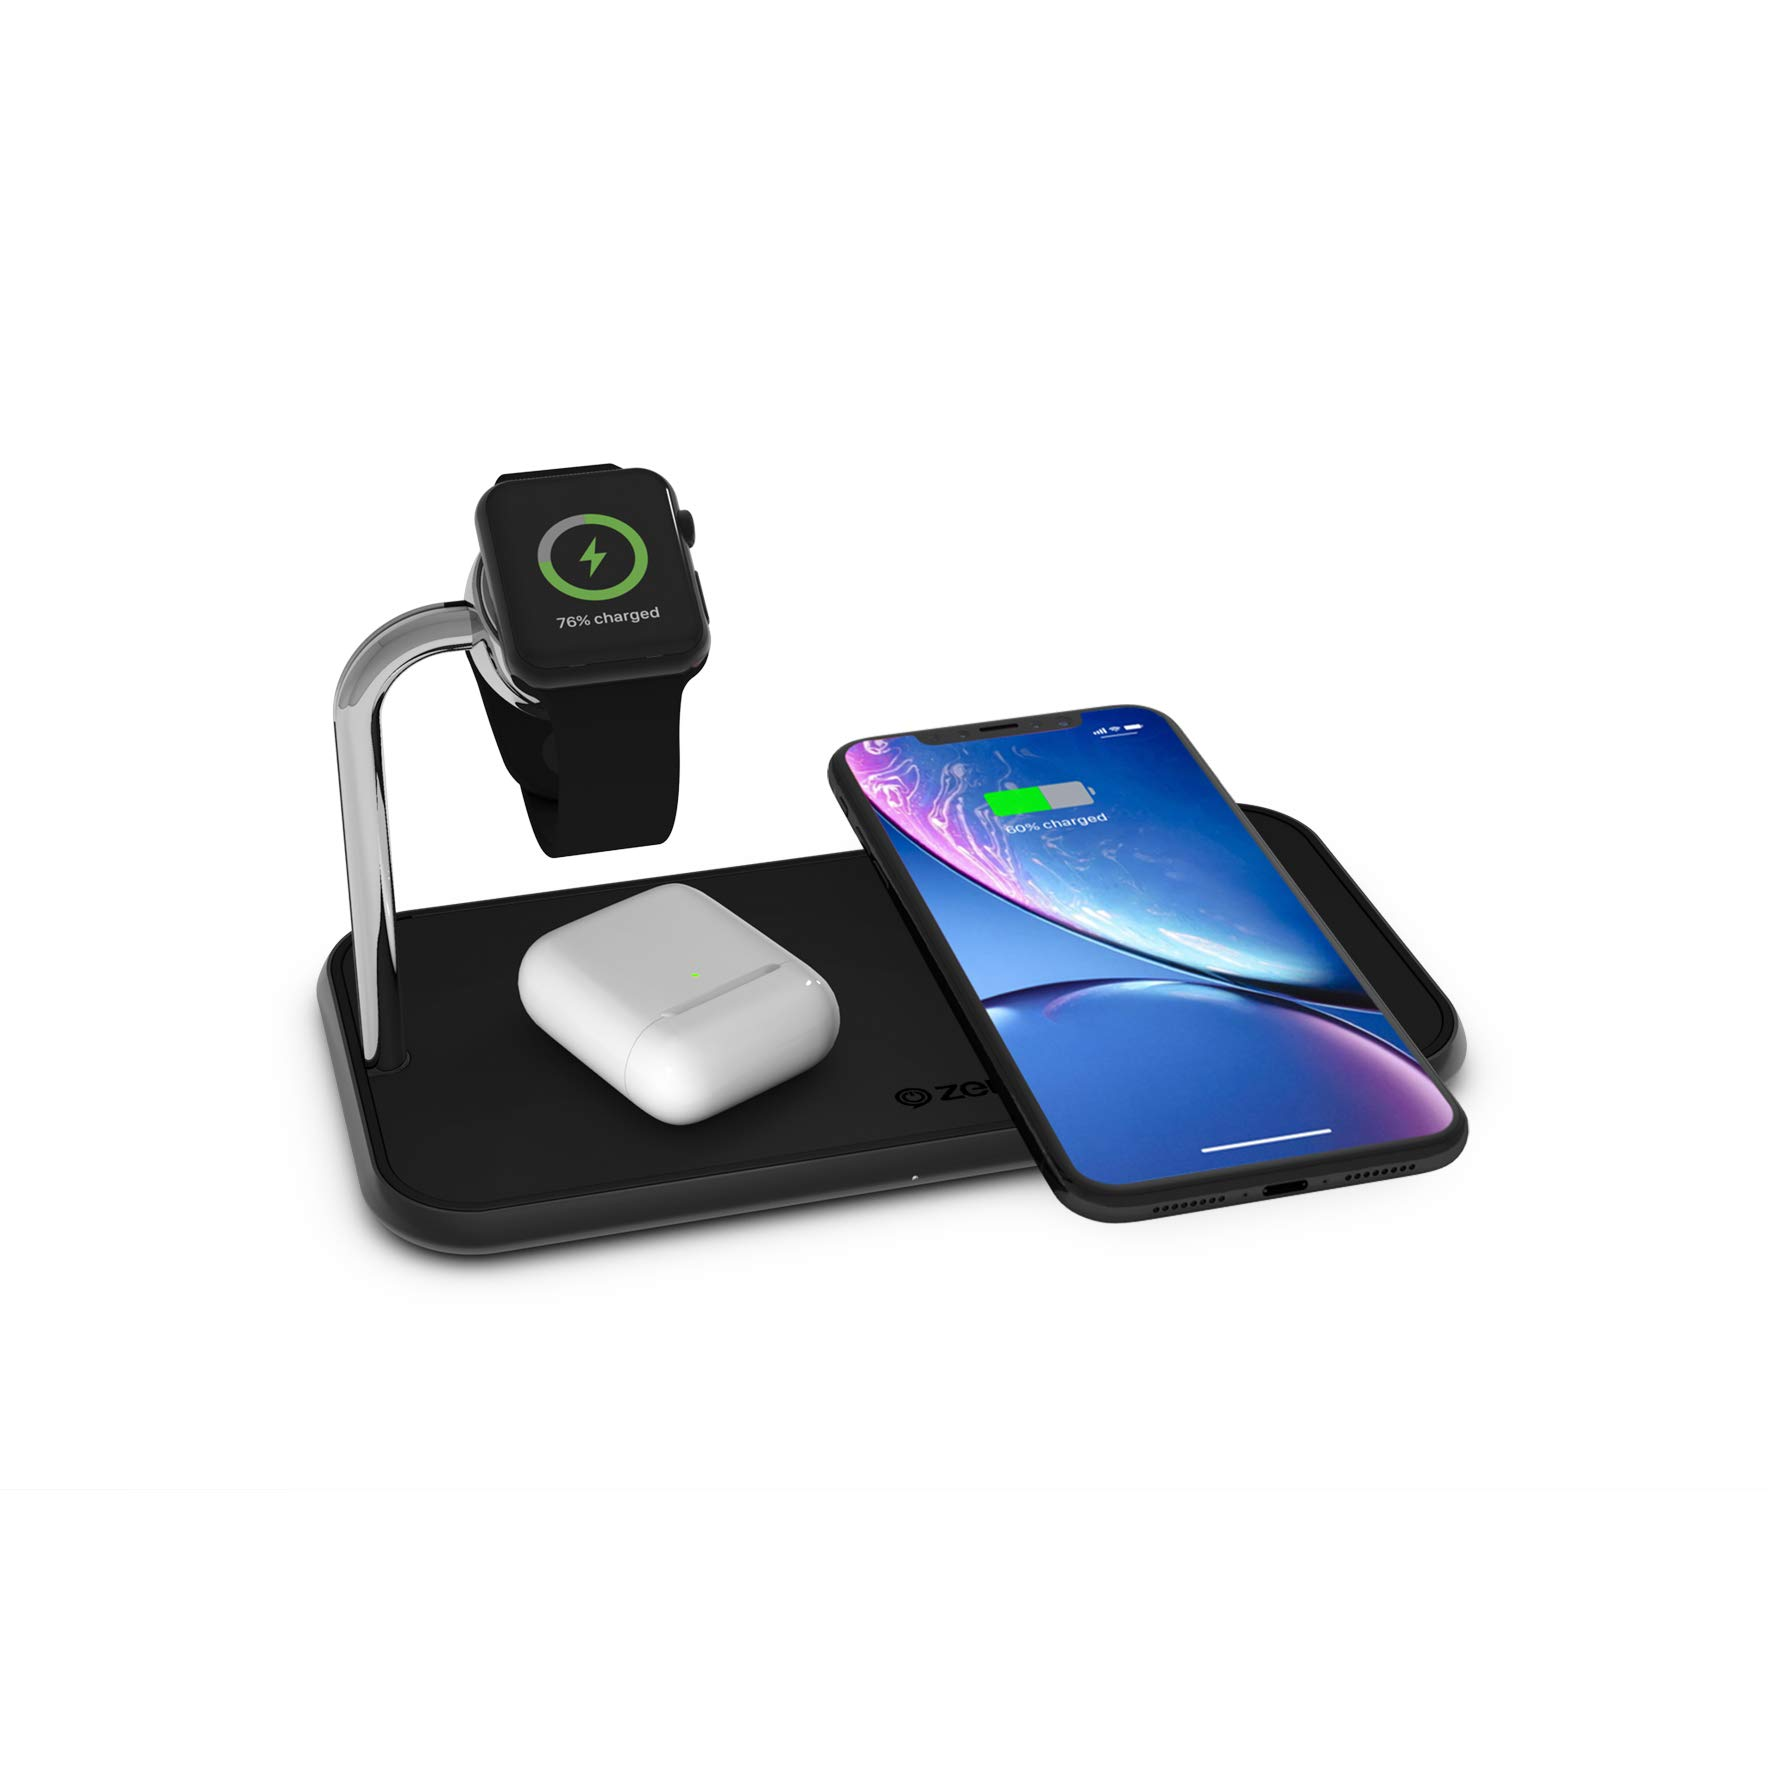 ZENS Dual 10-Watt Aluminum Wireless Charging Pad and Watch Charger Station - Qi and MFi Certified - Supports Apple and Samsung Fast Charge - Adapter Included - Black